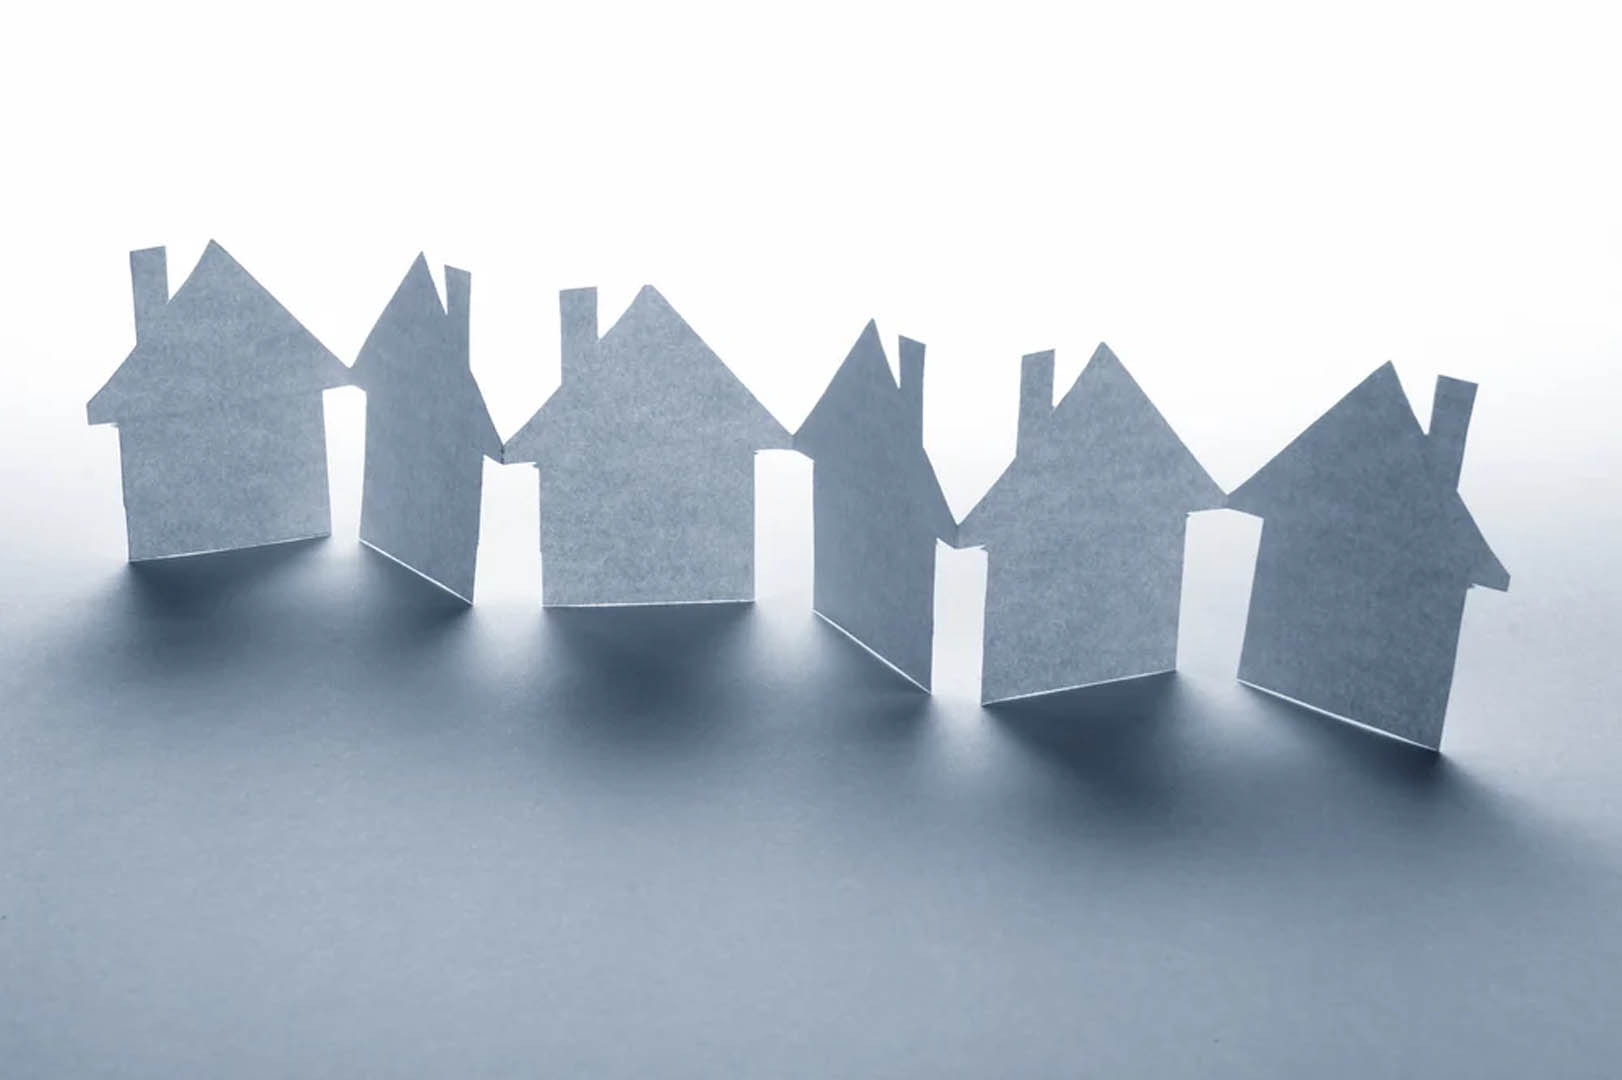 close-up-of-houses-cut-out-of-paper-on-white-background